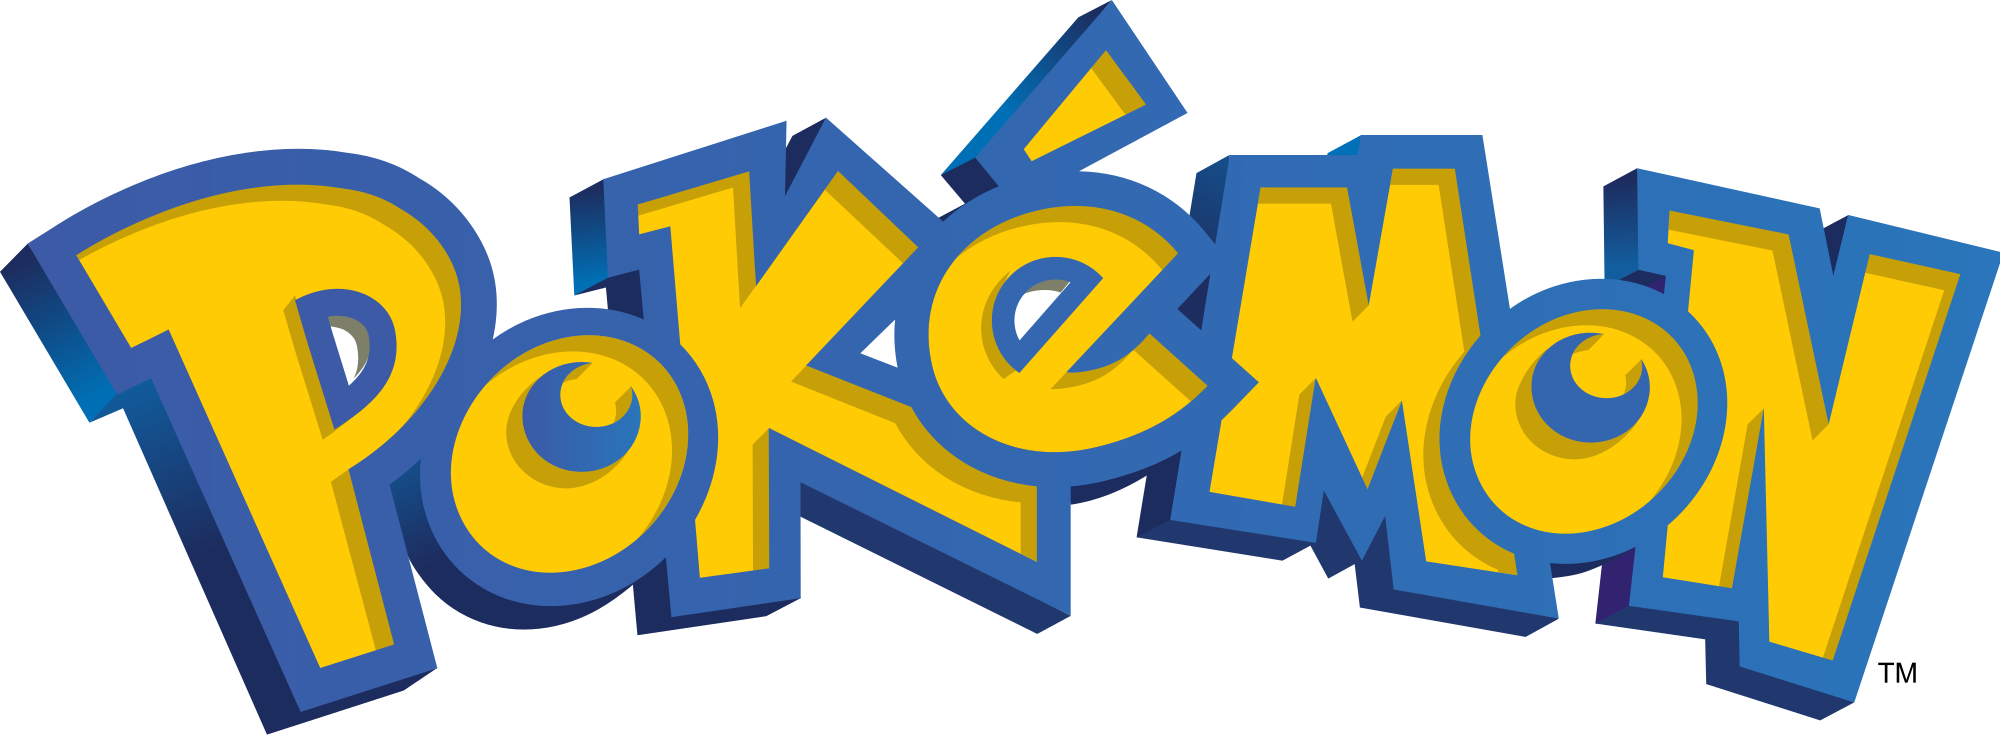 Pokemon background png. Logo transparent images pluspng